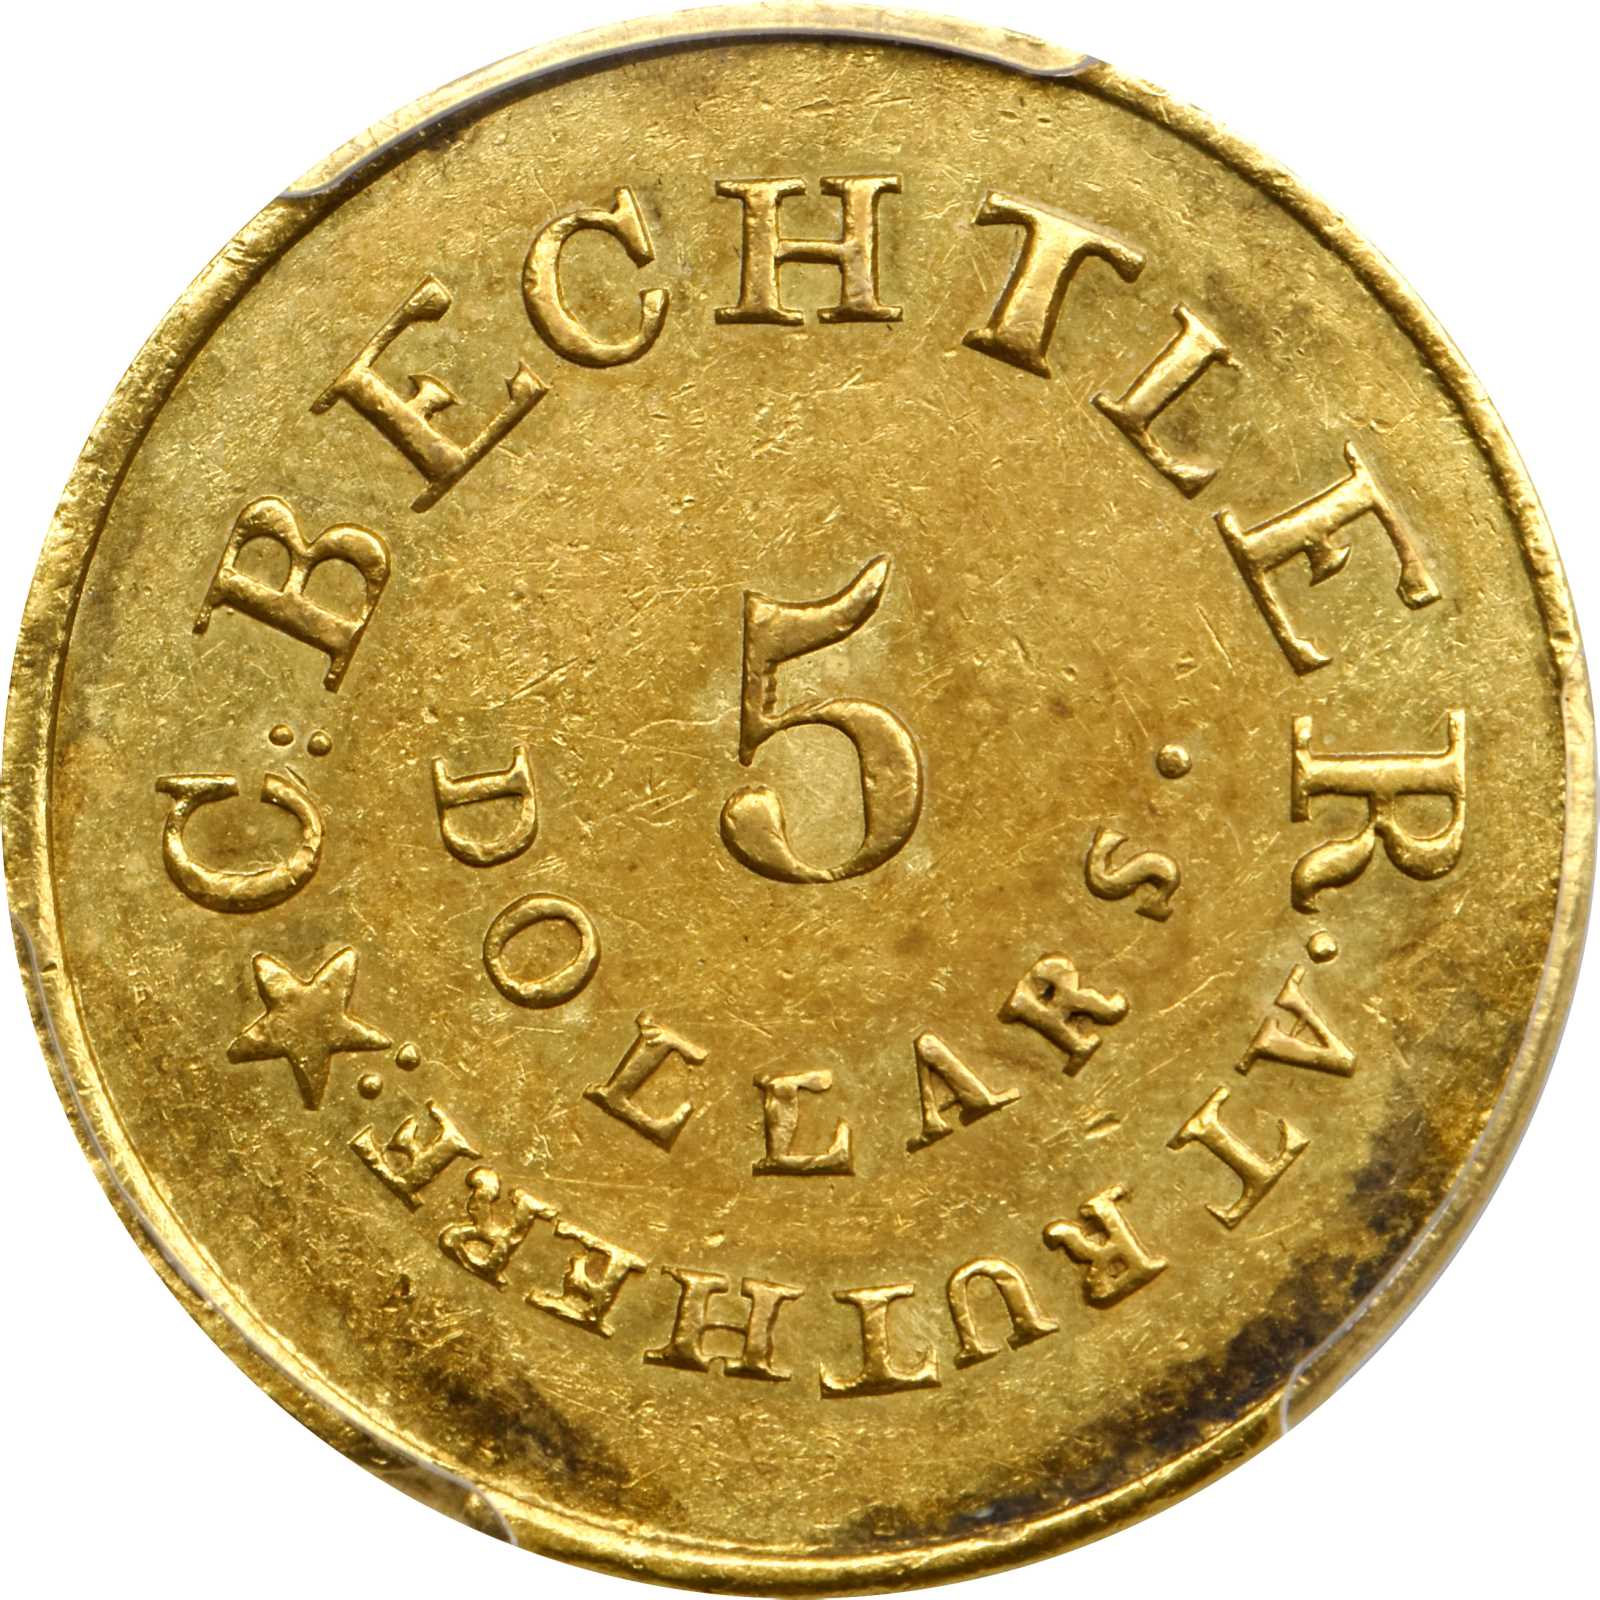 sample image for 1834 C.Becht $5 RUTHERFORD, RE, 20C (K-18)